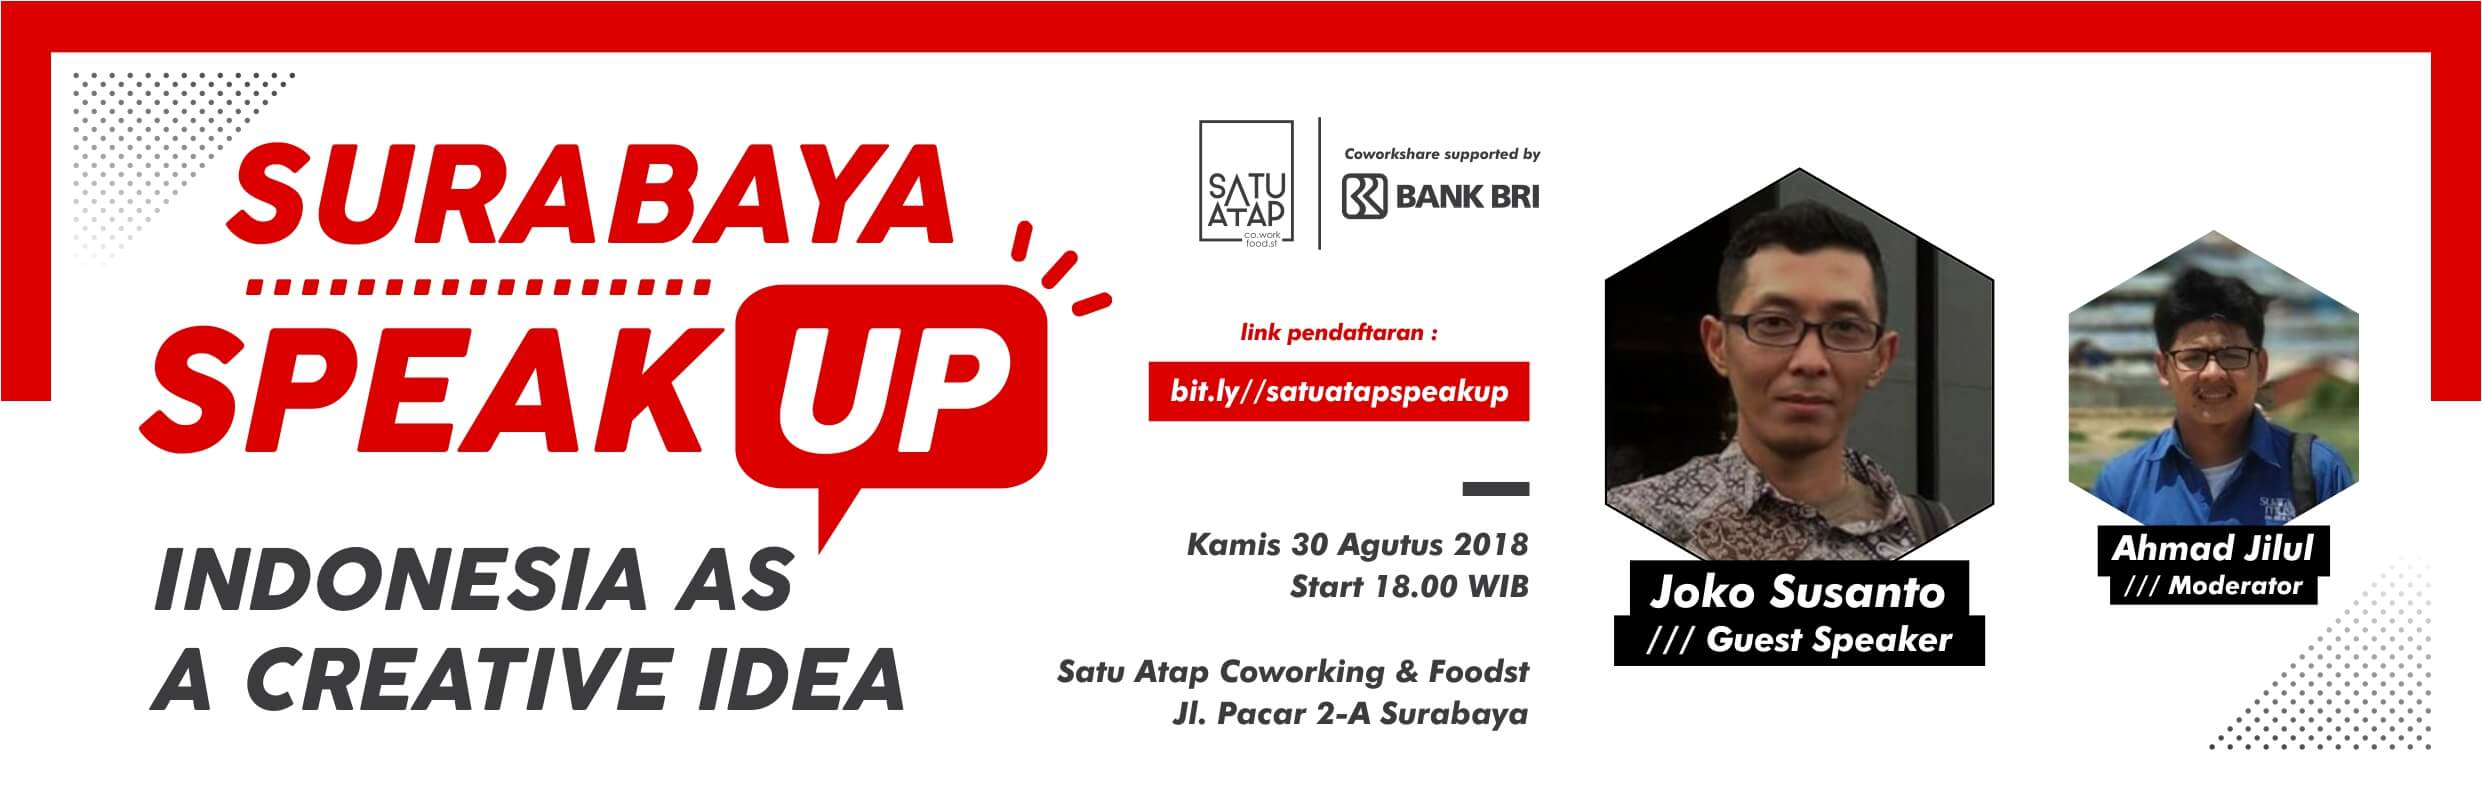 slider-surabaya-speak-up-event-business-satu-atap-coworking-space-and-food-station-surabaya-1